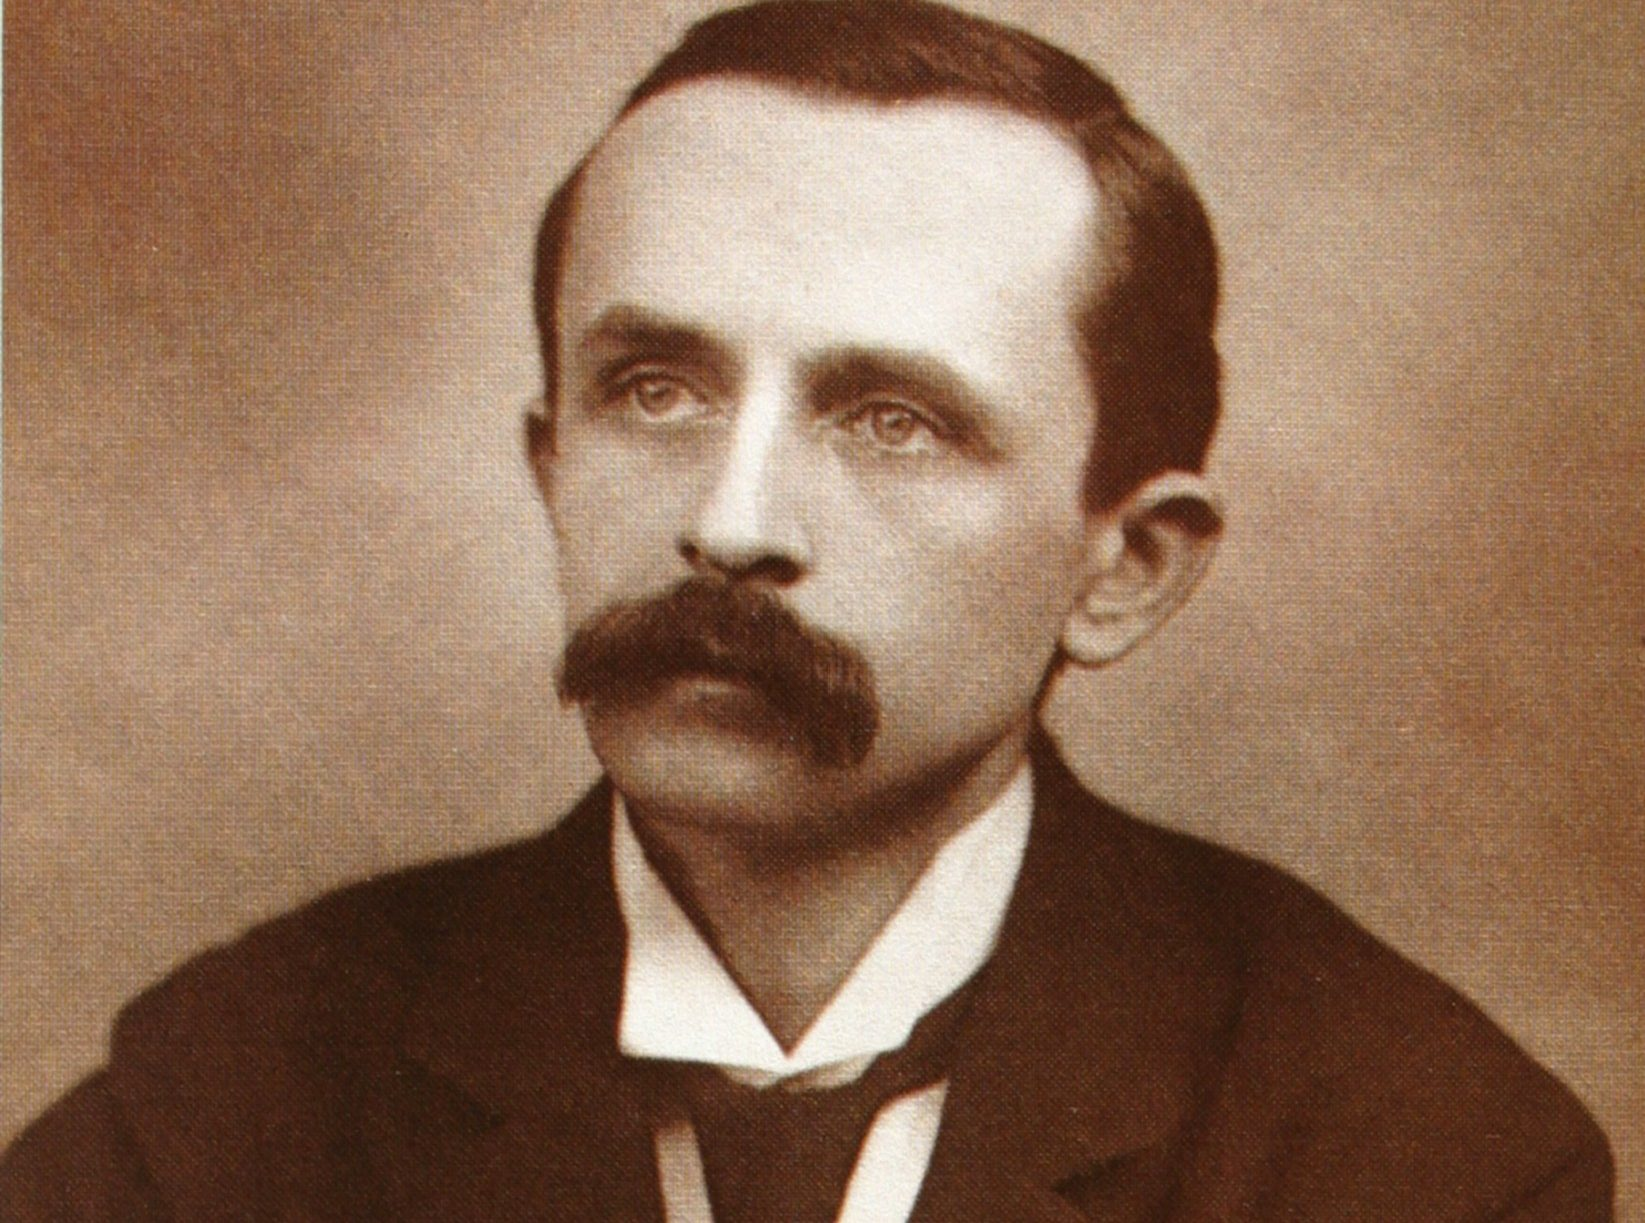 JM Barrie, author of Peter Pan.